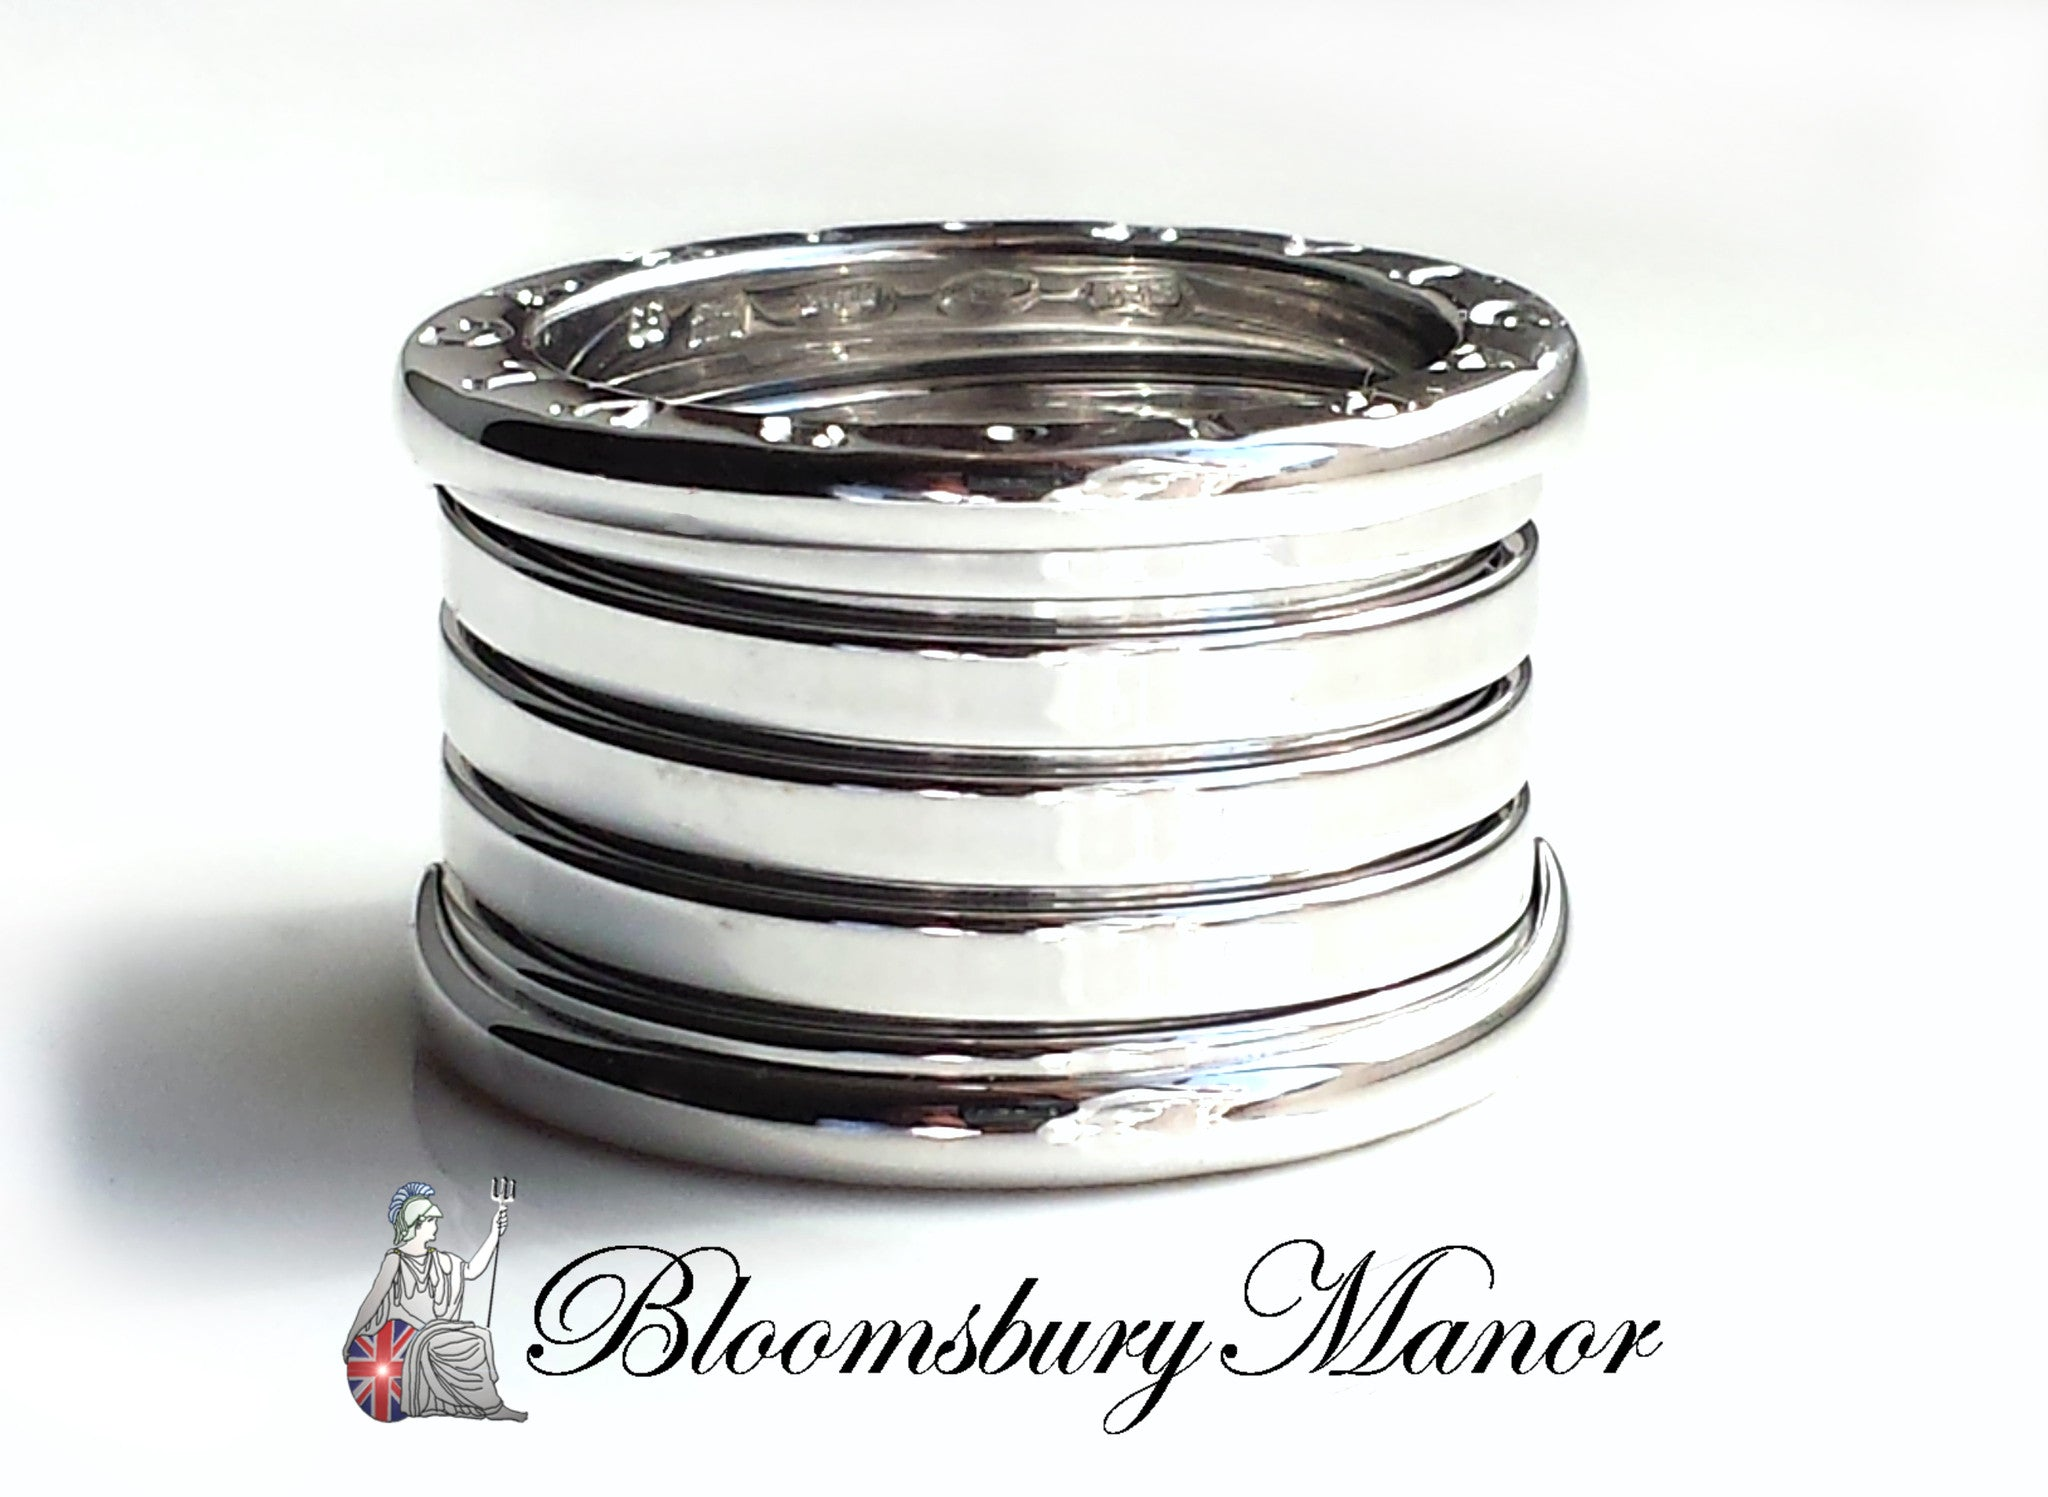 d93a32fb0 Bulgari Bvlgari 5-Band B.Zero1 Ring in 18K White Gold, Size 53 (UK M) -  Bloomsbury Manor Ltd